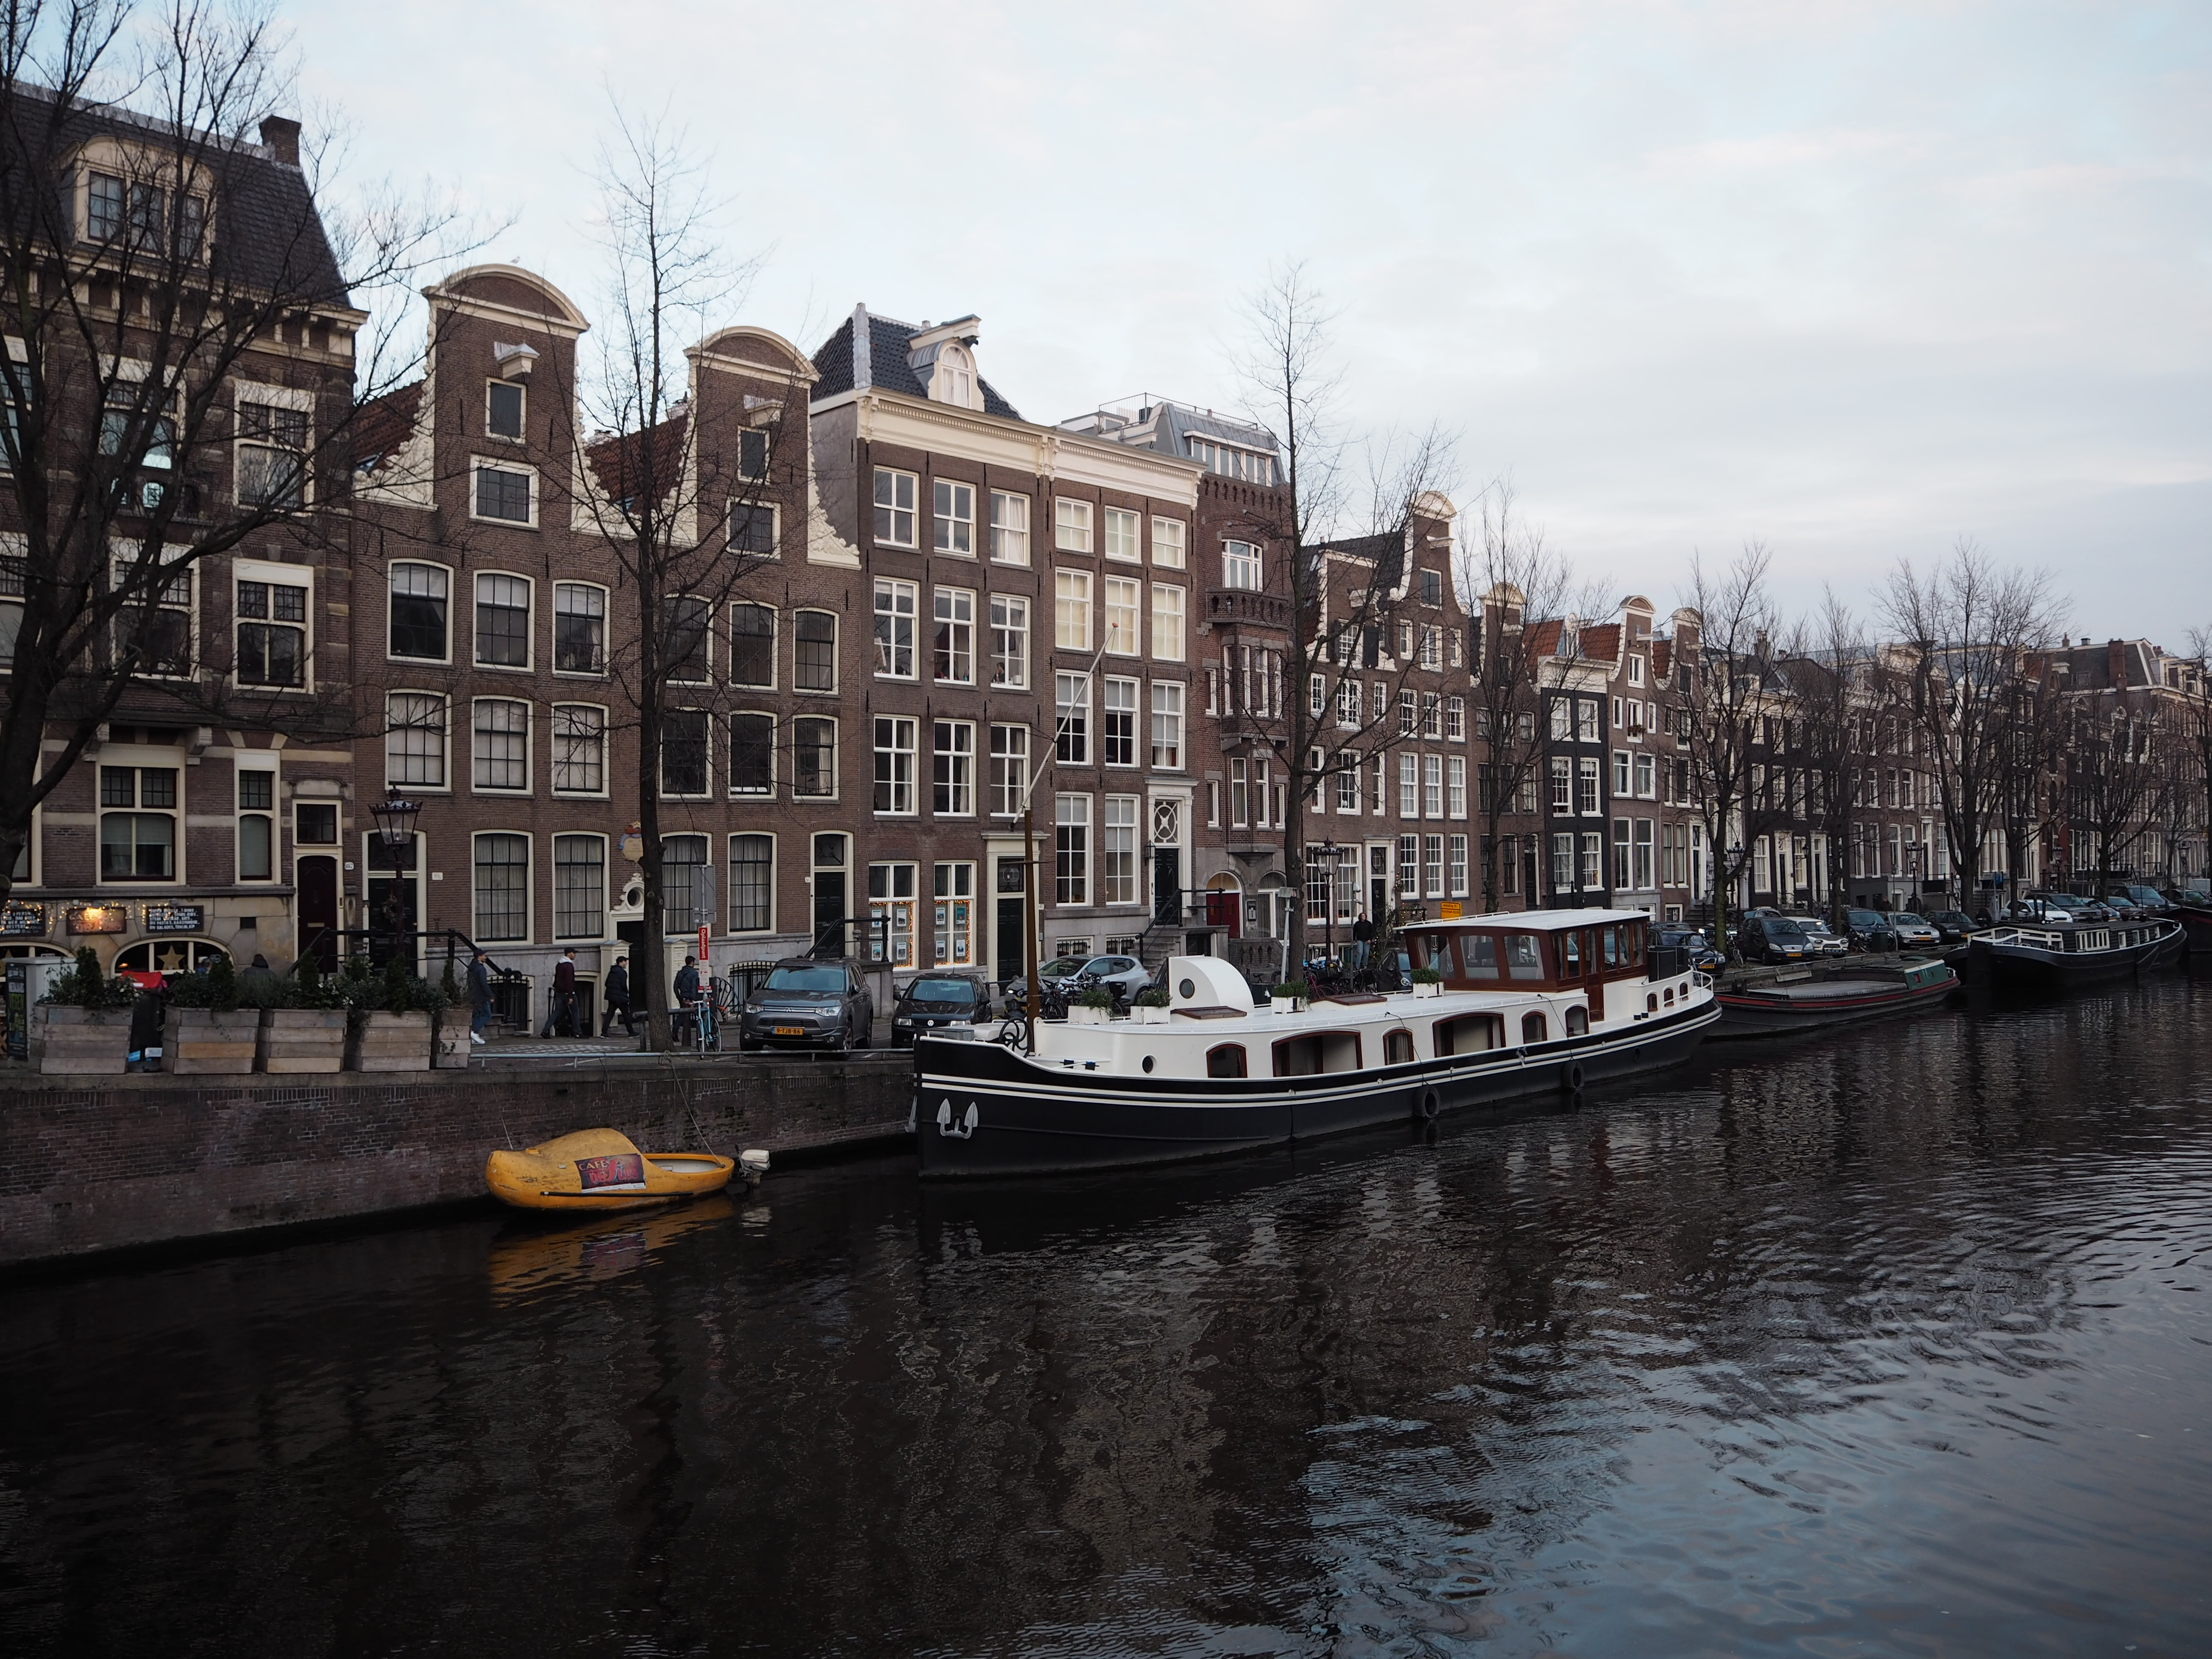 Amsterdam travel blog, best things to do in amsterdam, amsterdam travel tips, best bars in amsterdam, best places to eat in amsterdam, best restaurants in amsterdam, lauras little locket, amsterdam tips, tourists in amsterdam,